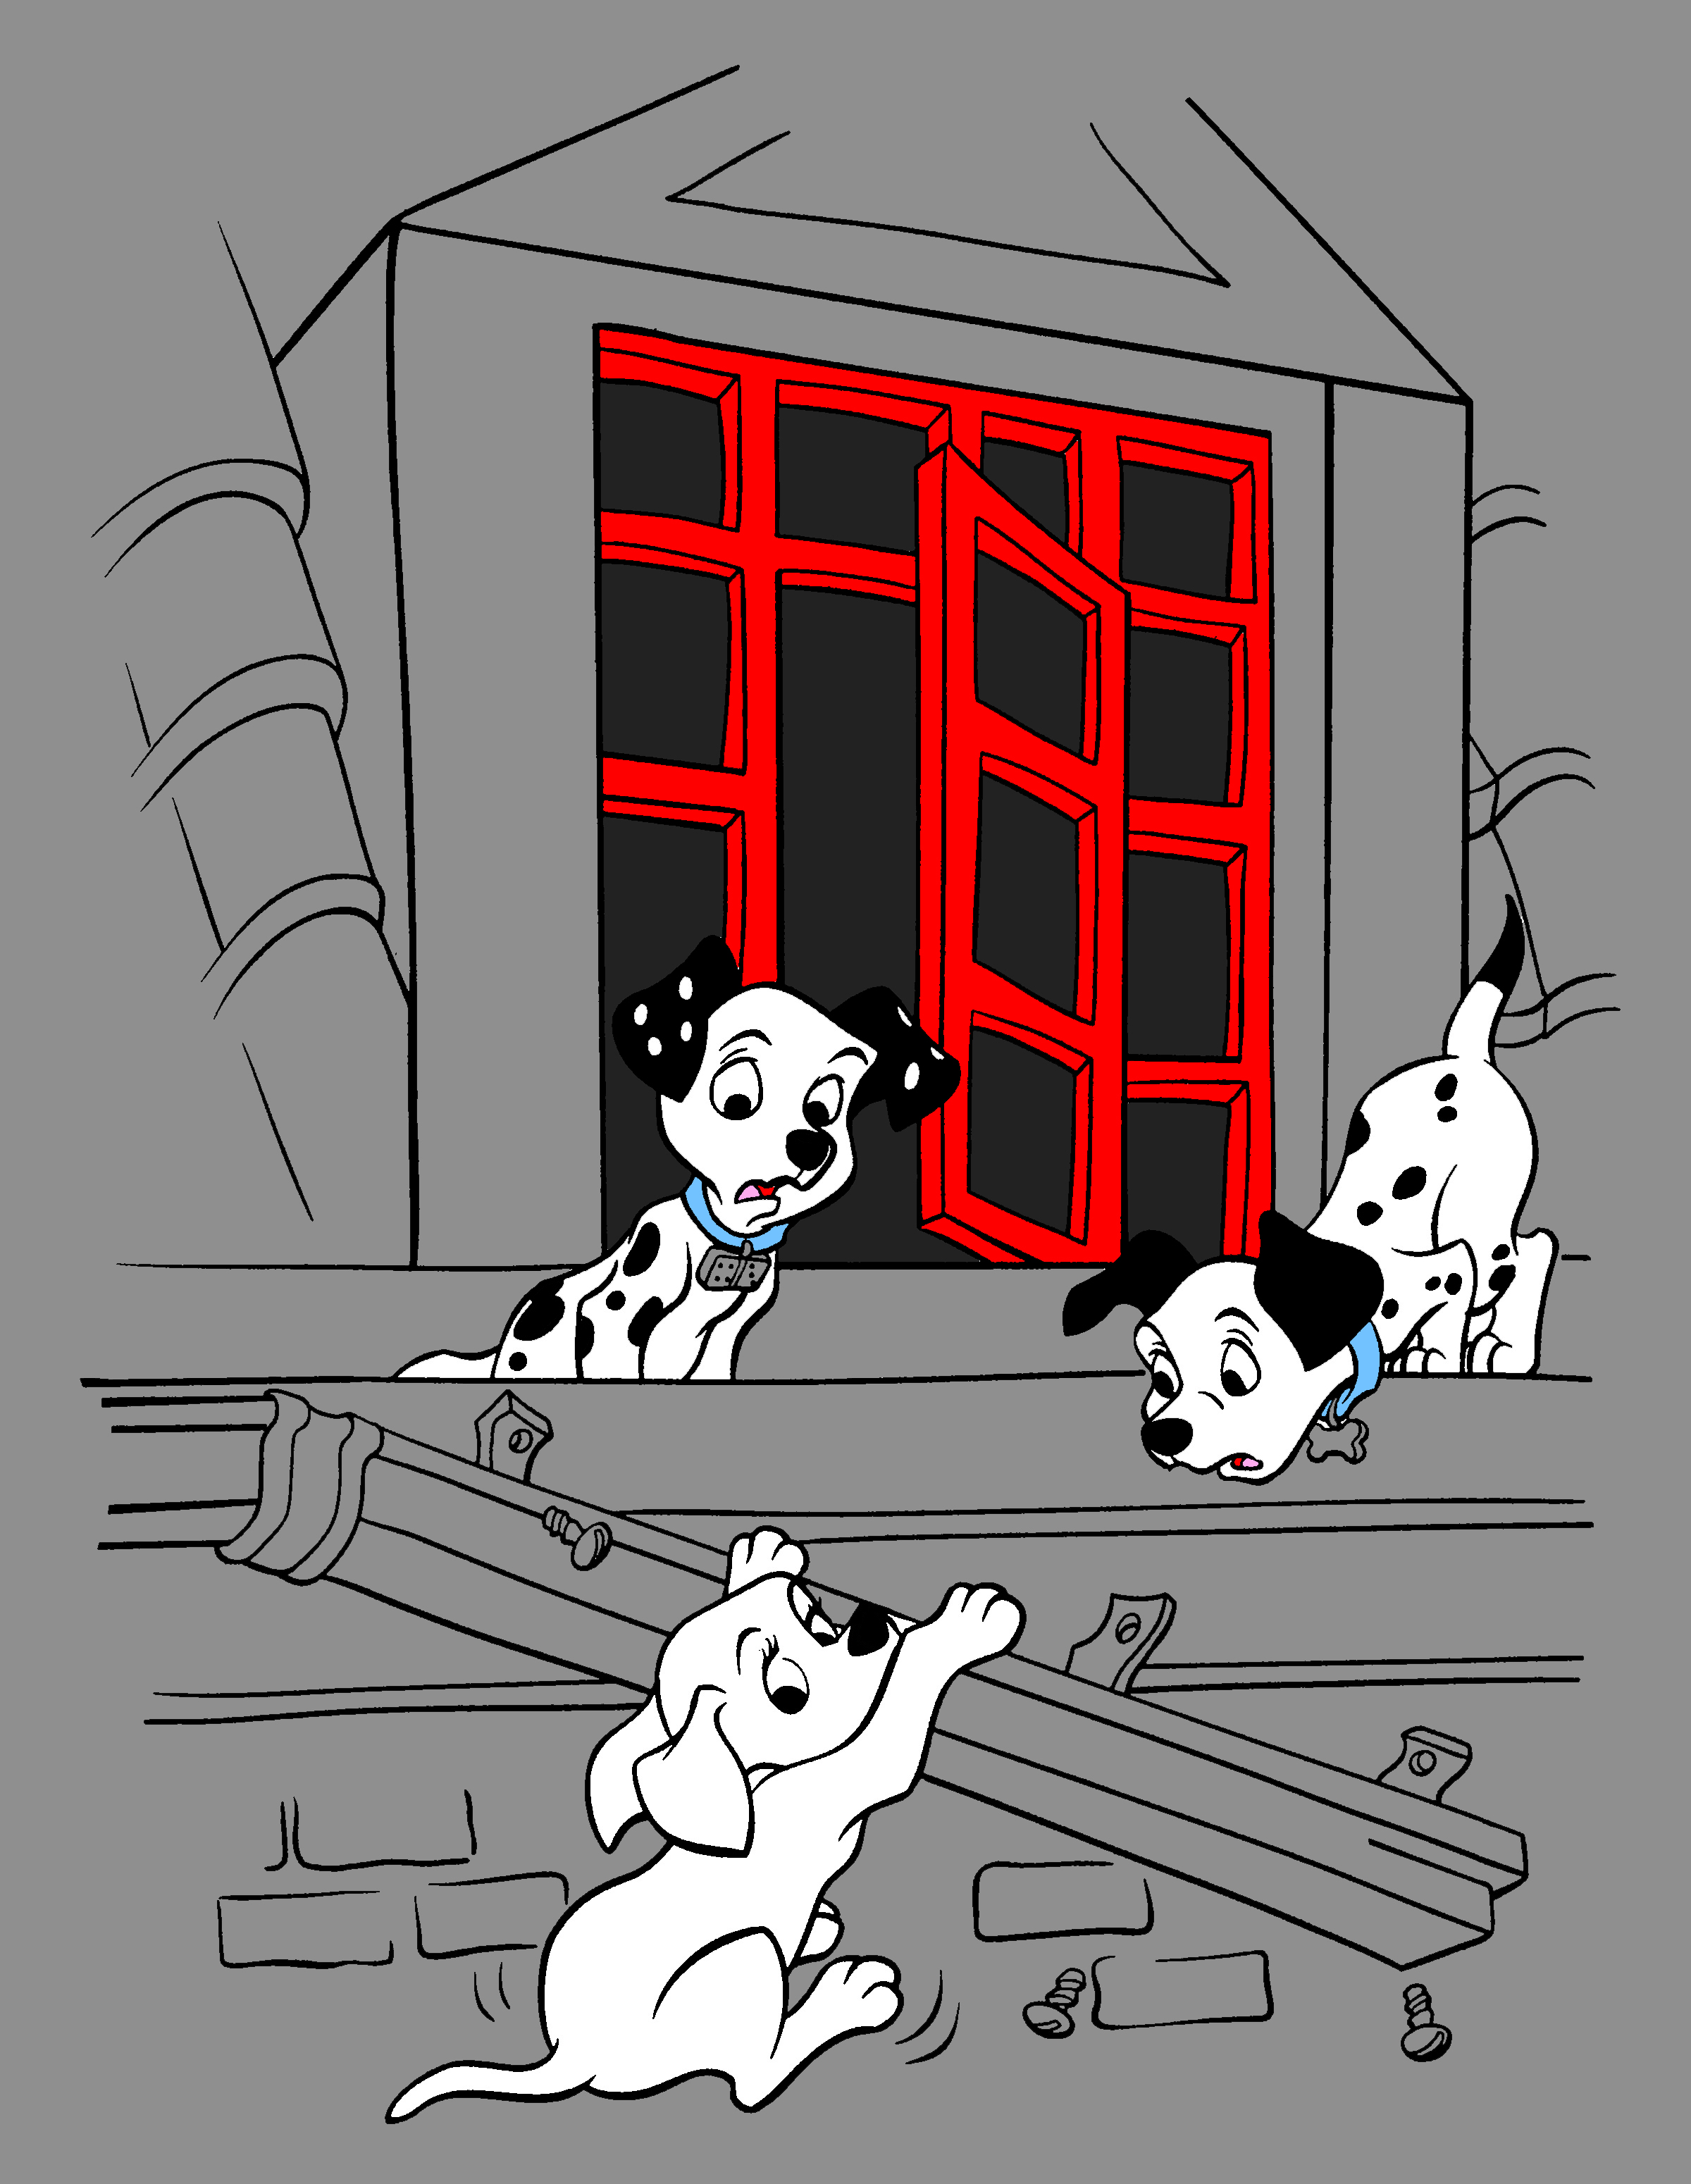 102 Dalmatians Coloring Pages 24